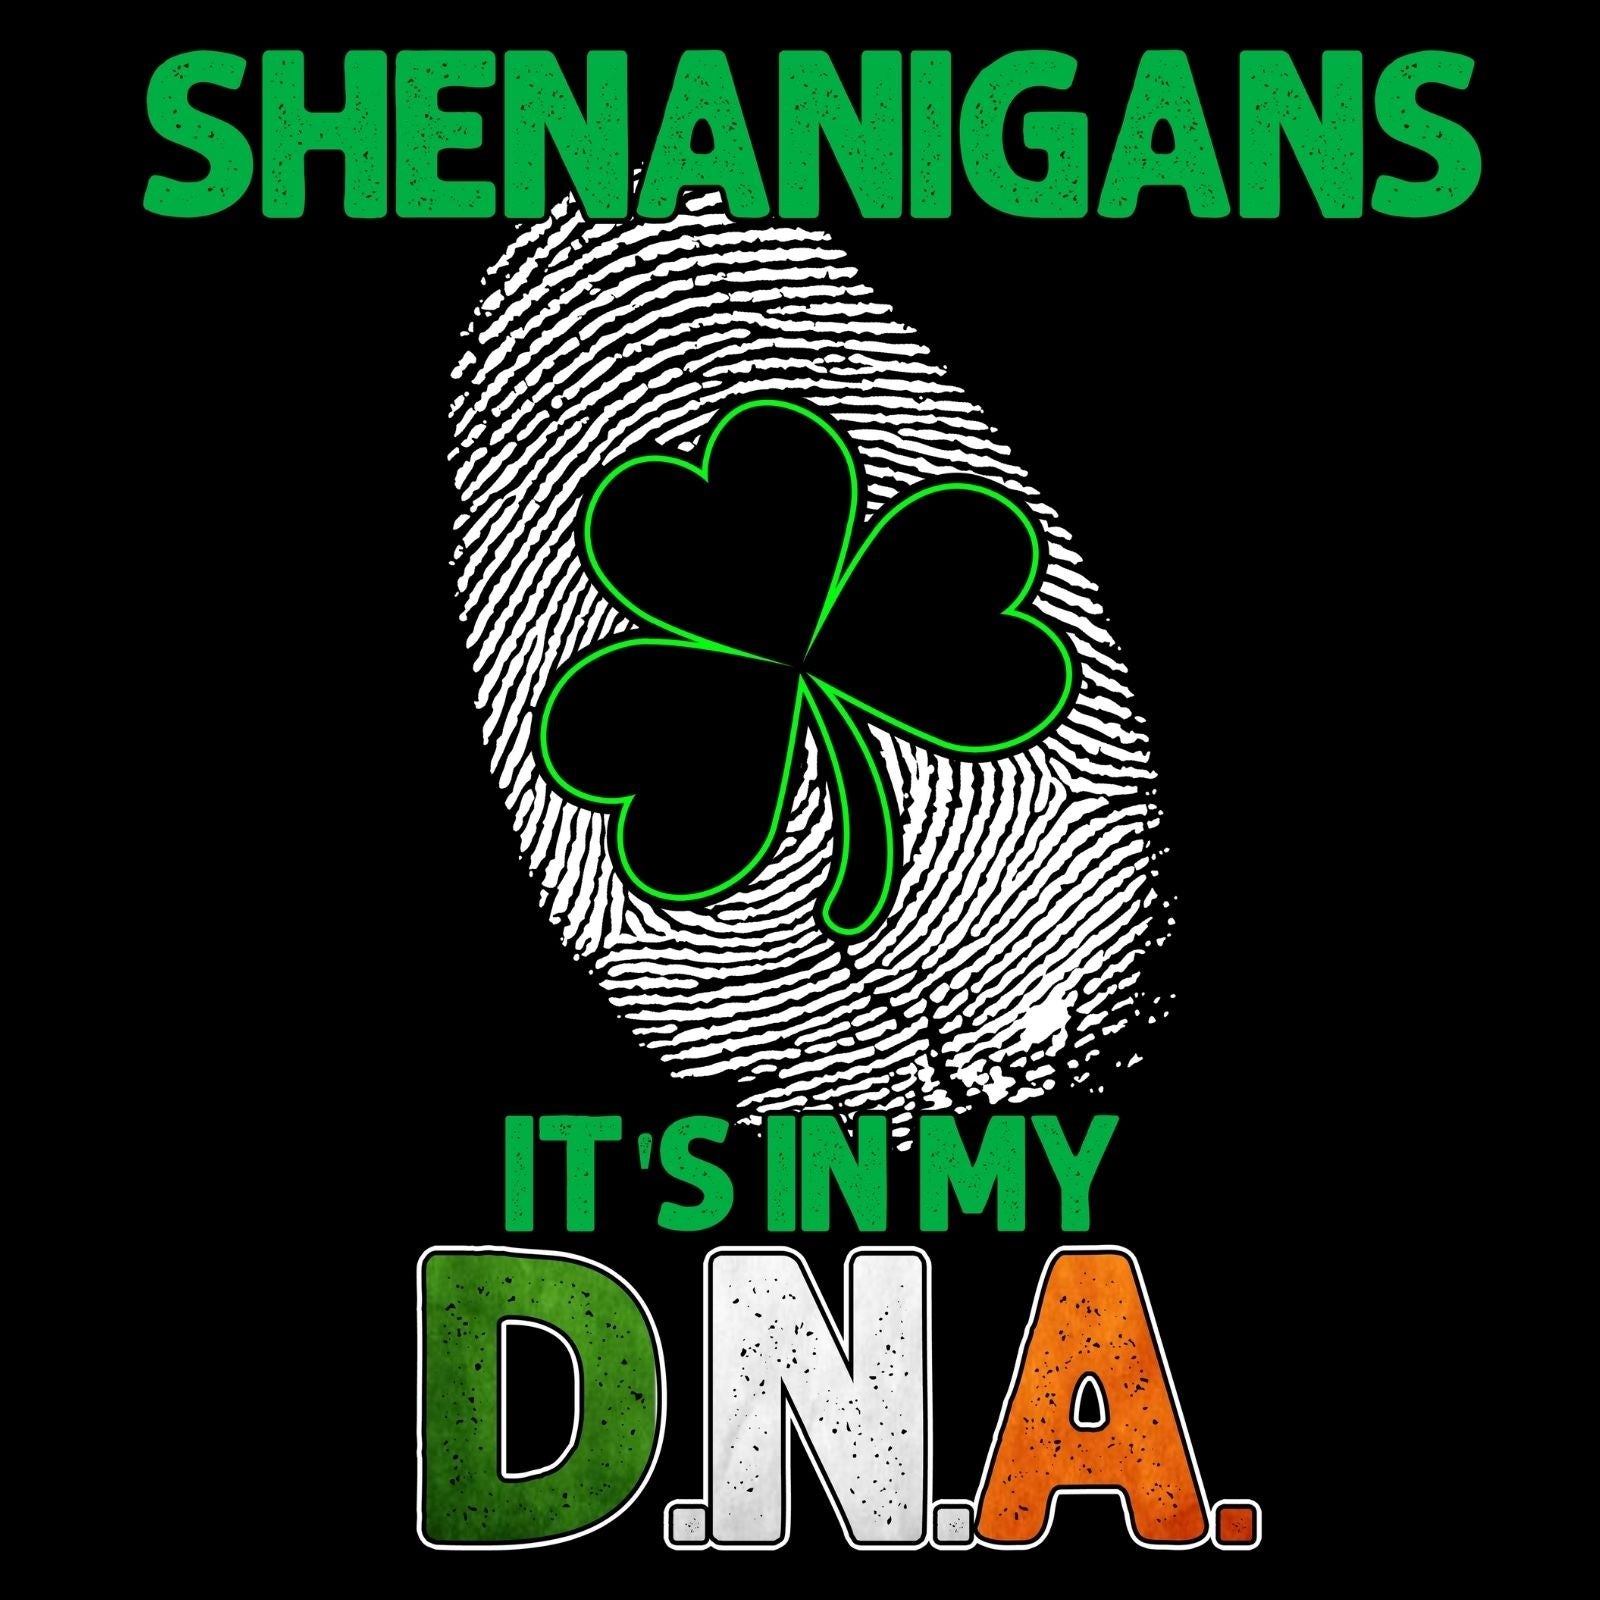 Shenanigans Its In My DNA 1 - Bastard Graphics